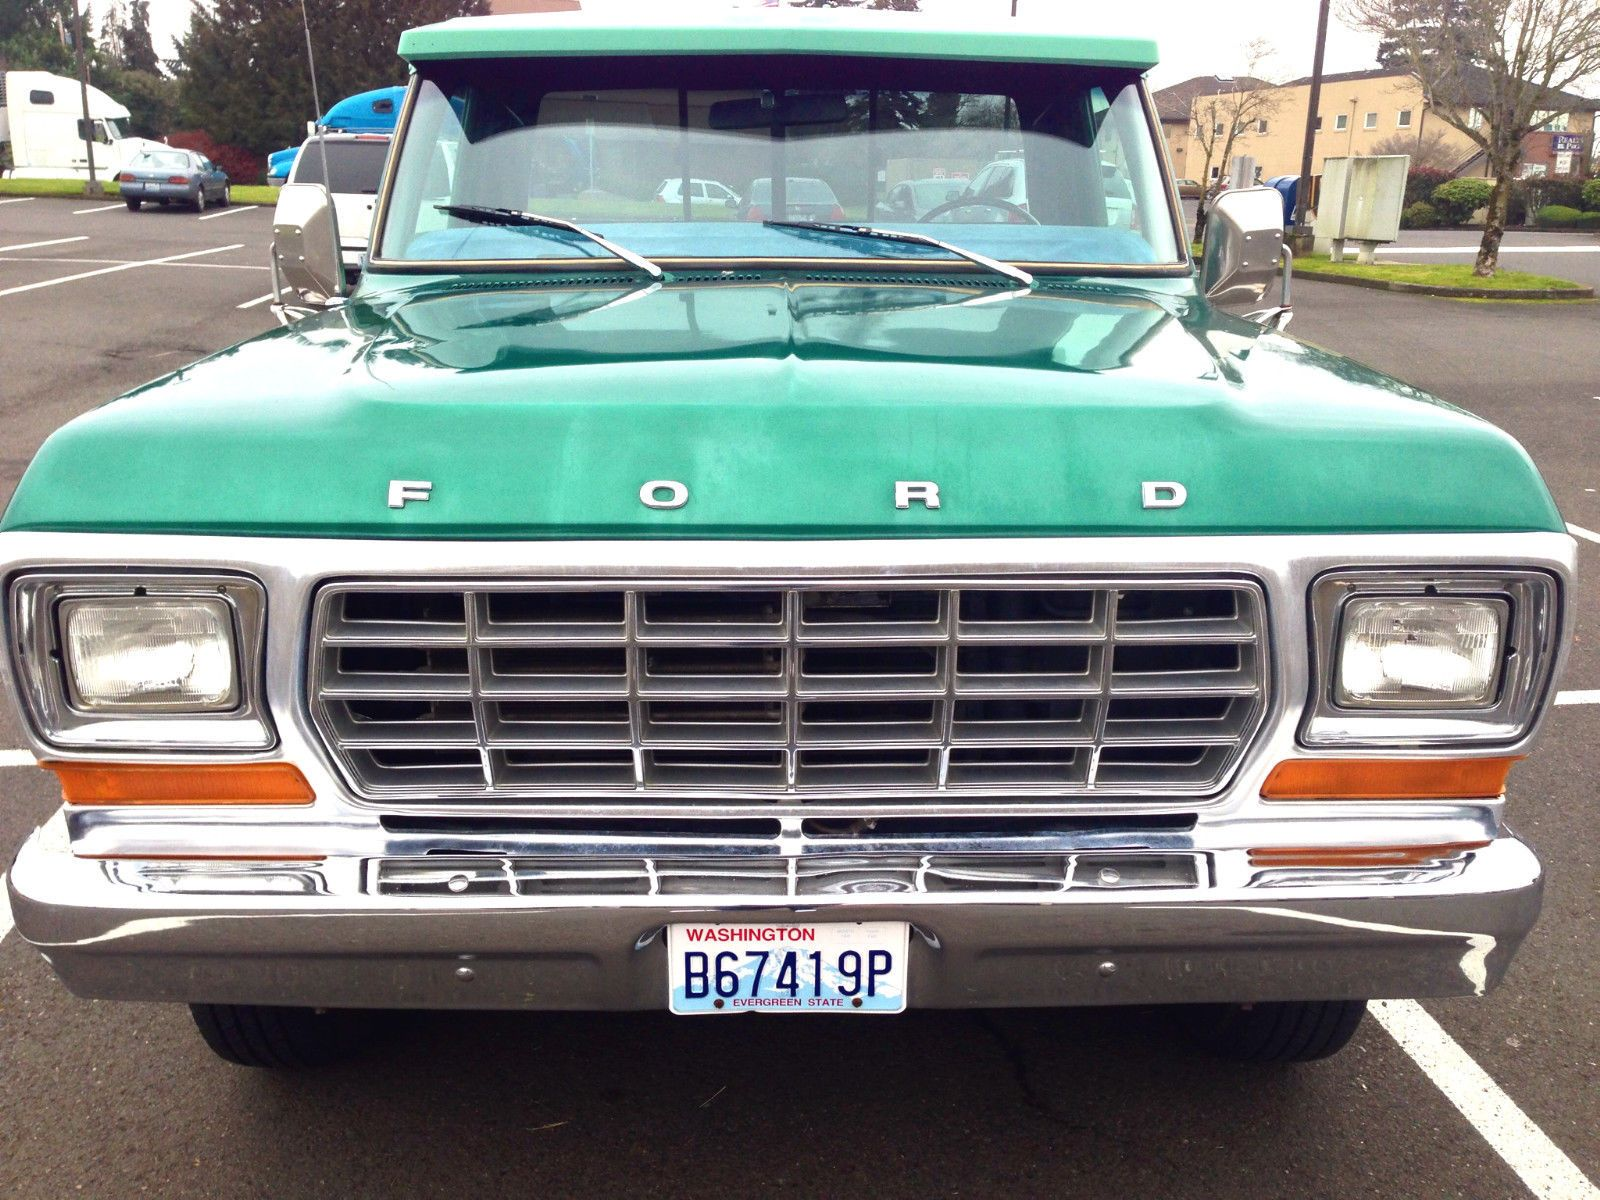 small resolution of 1978 ford f 350 xlt ranger camper special 2wd automatic transmission 460cu v8